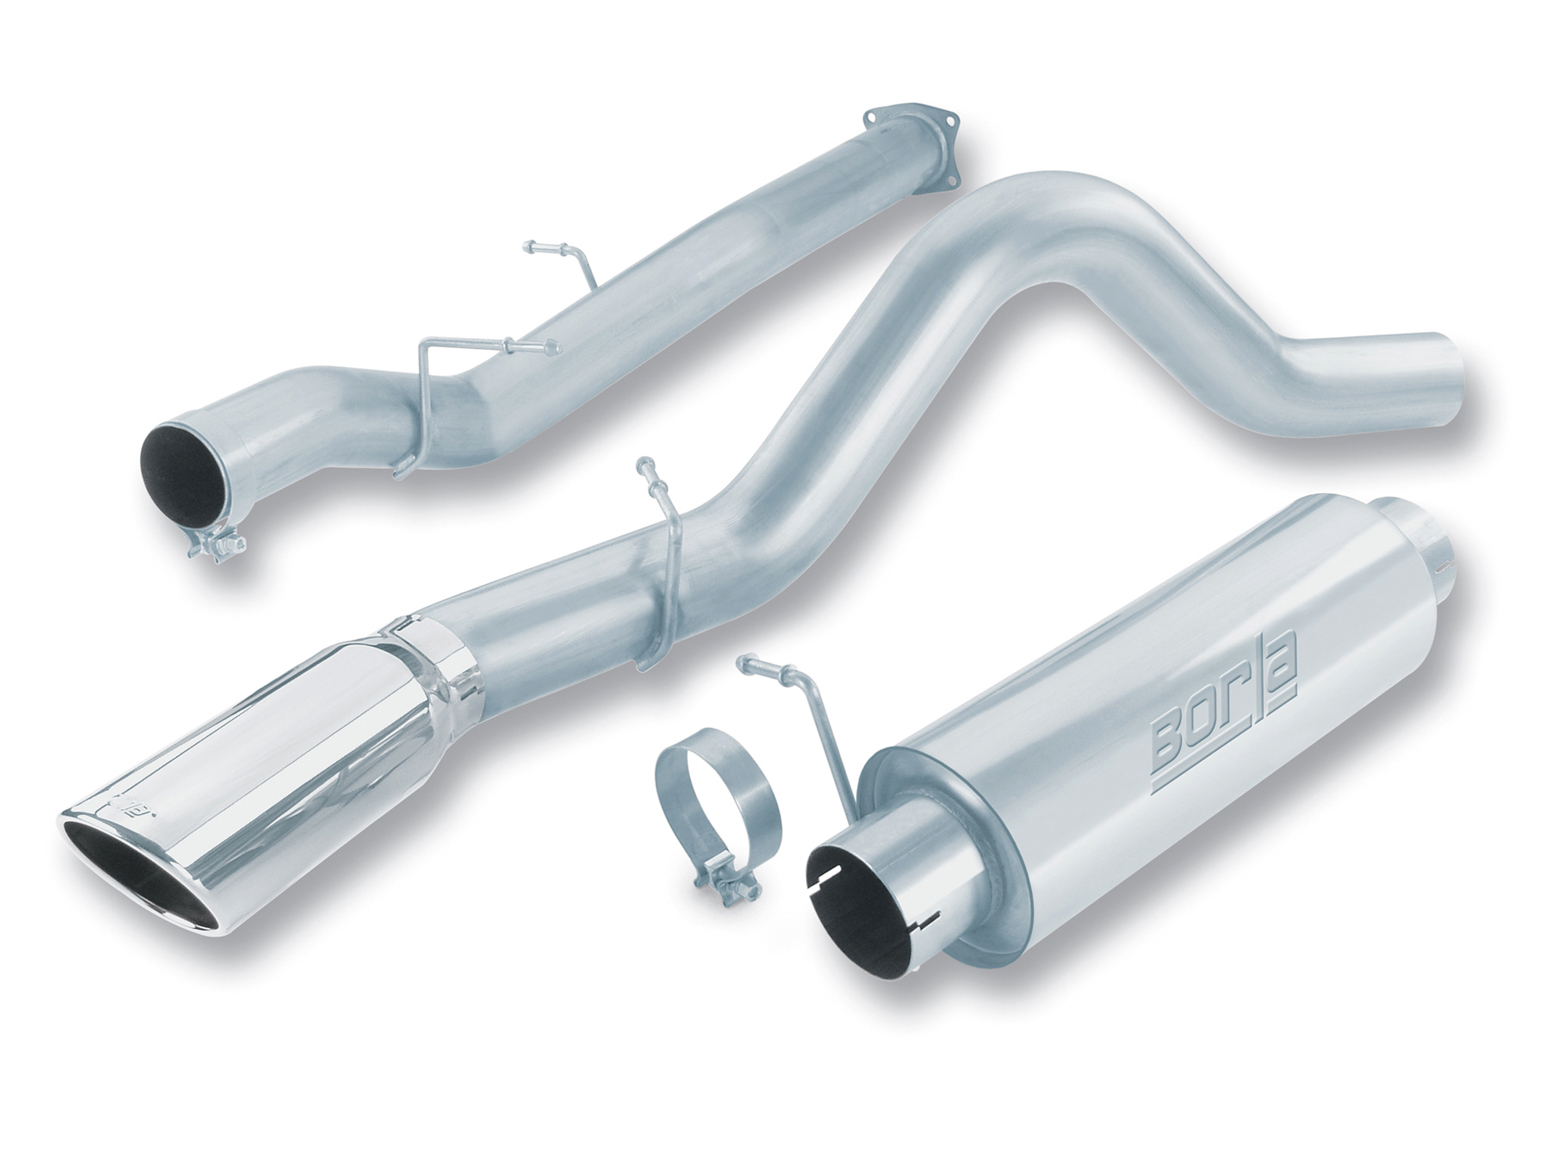 "Chevrolet Silverado Diesel 2500/3500 2006-2007 Borla 4"" Cat-Back Exhaust System - Single Round Rolled Angle-Cut Single Square Angle-Cut Phantom"" Long X Single Round Rolled Angle-Cut Phantom"" Dia"